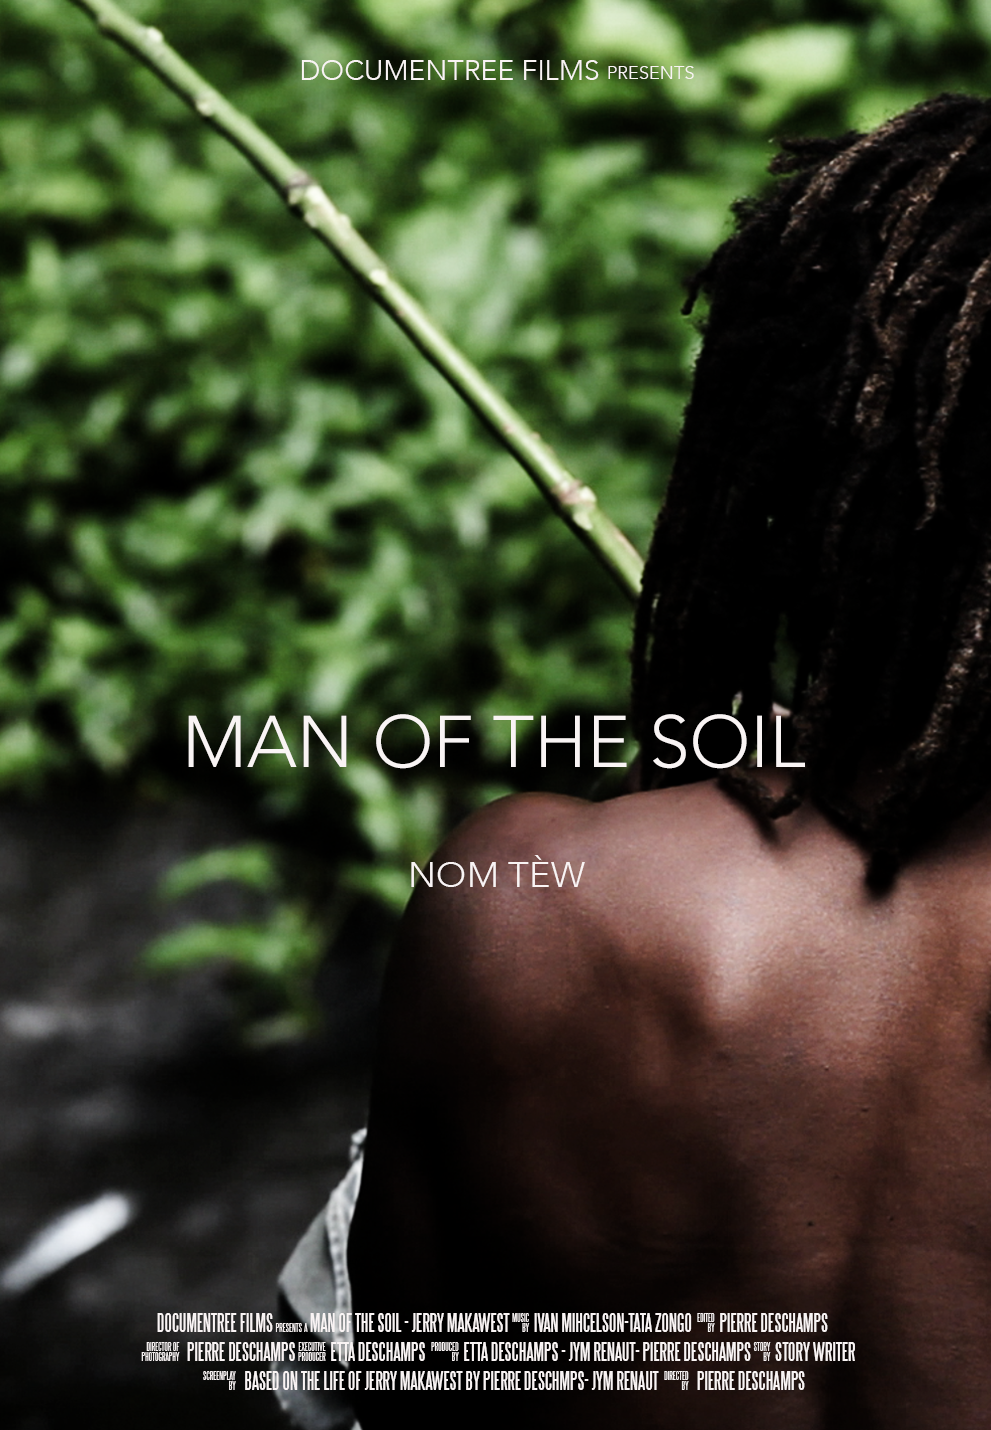 Nom Tèw - Man of the soil